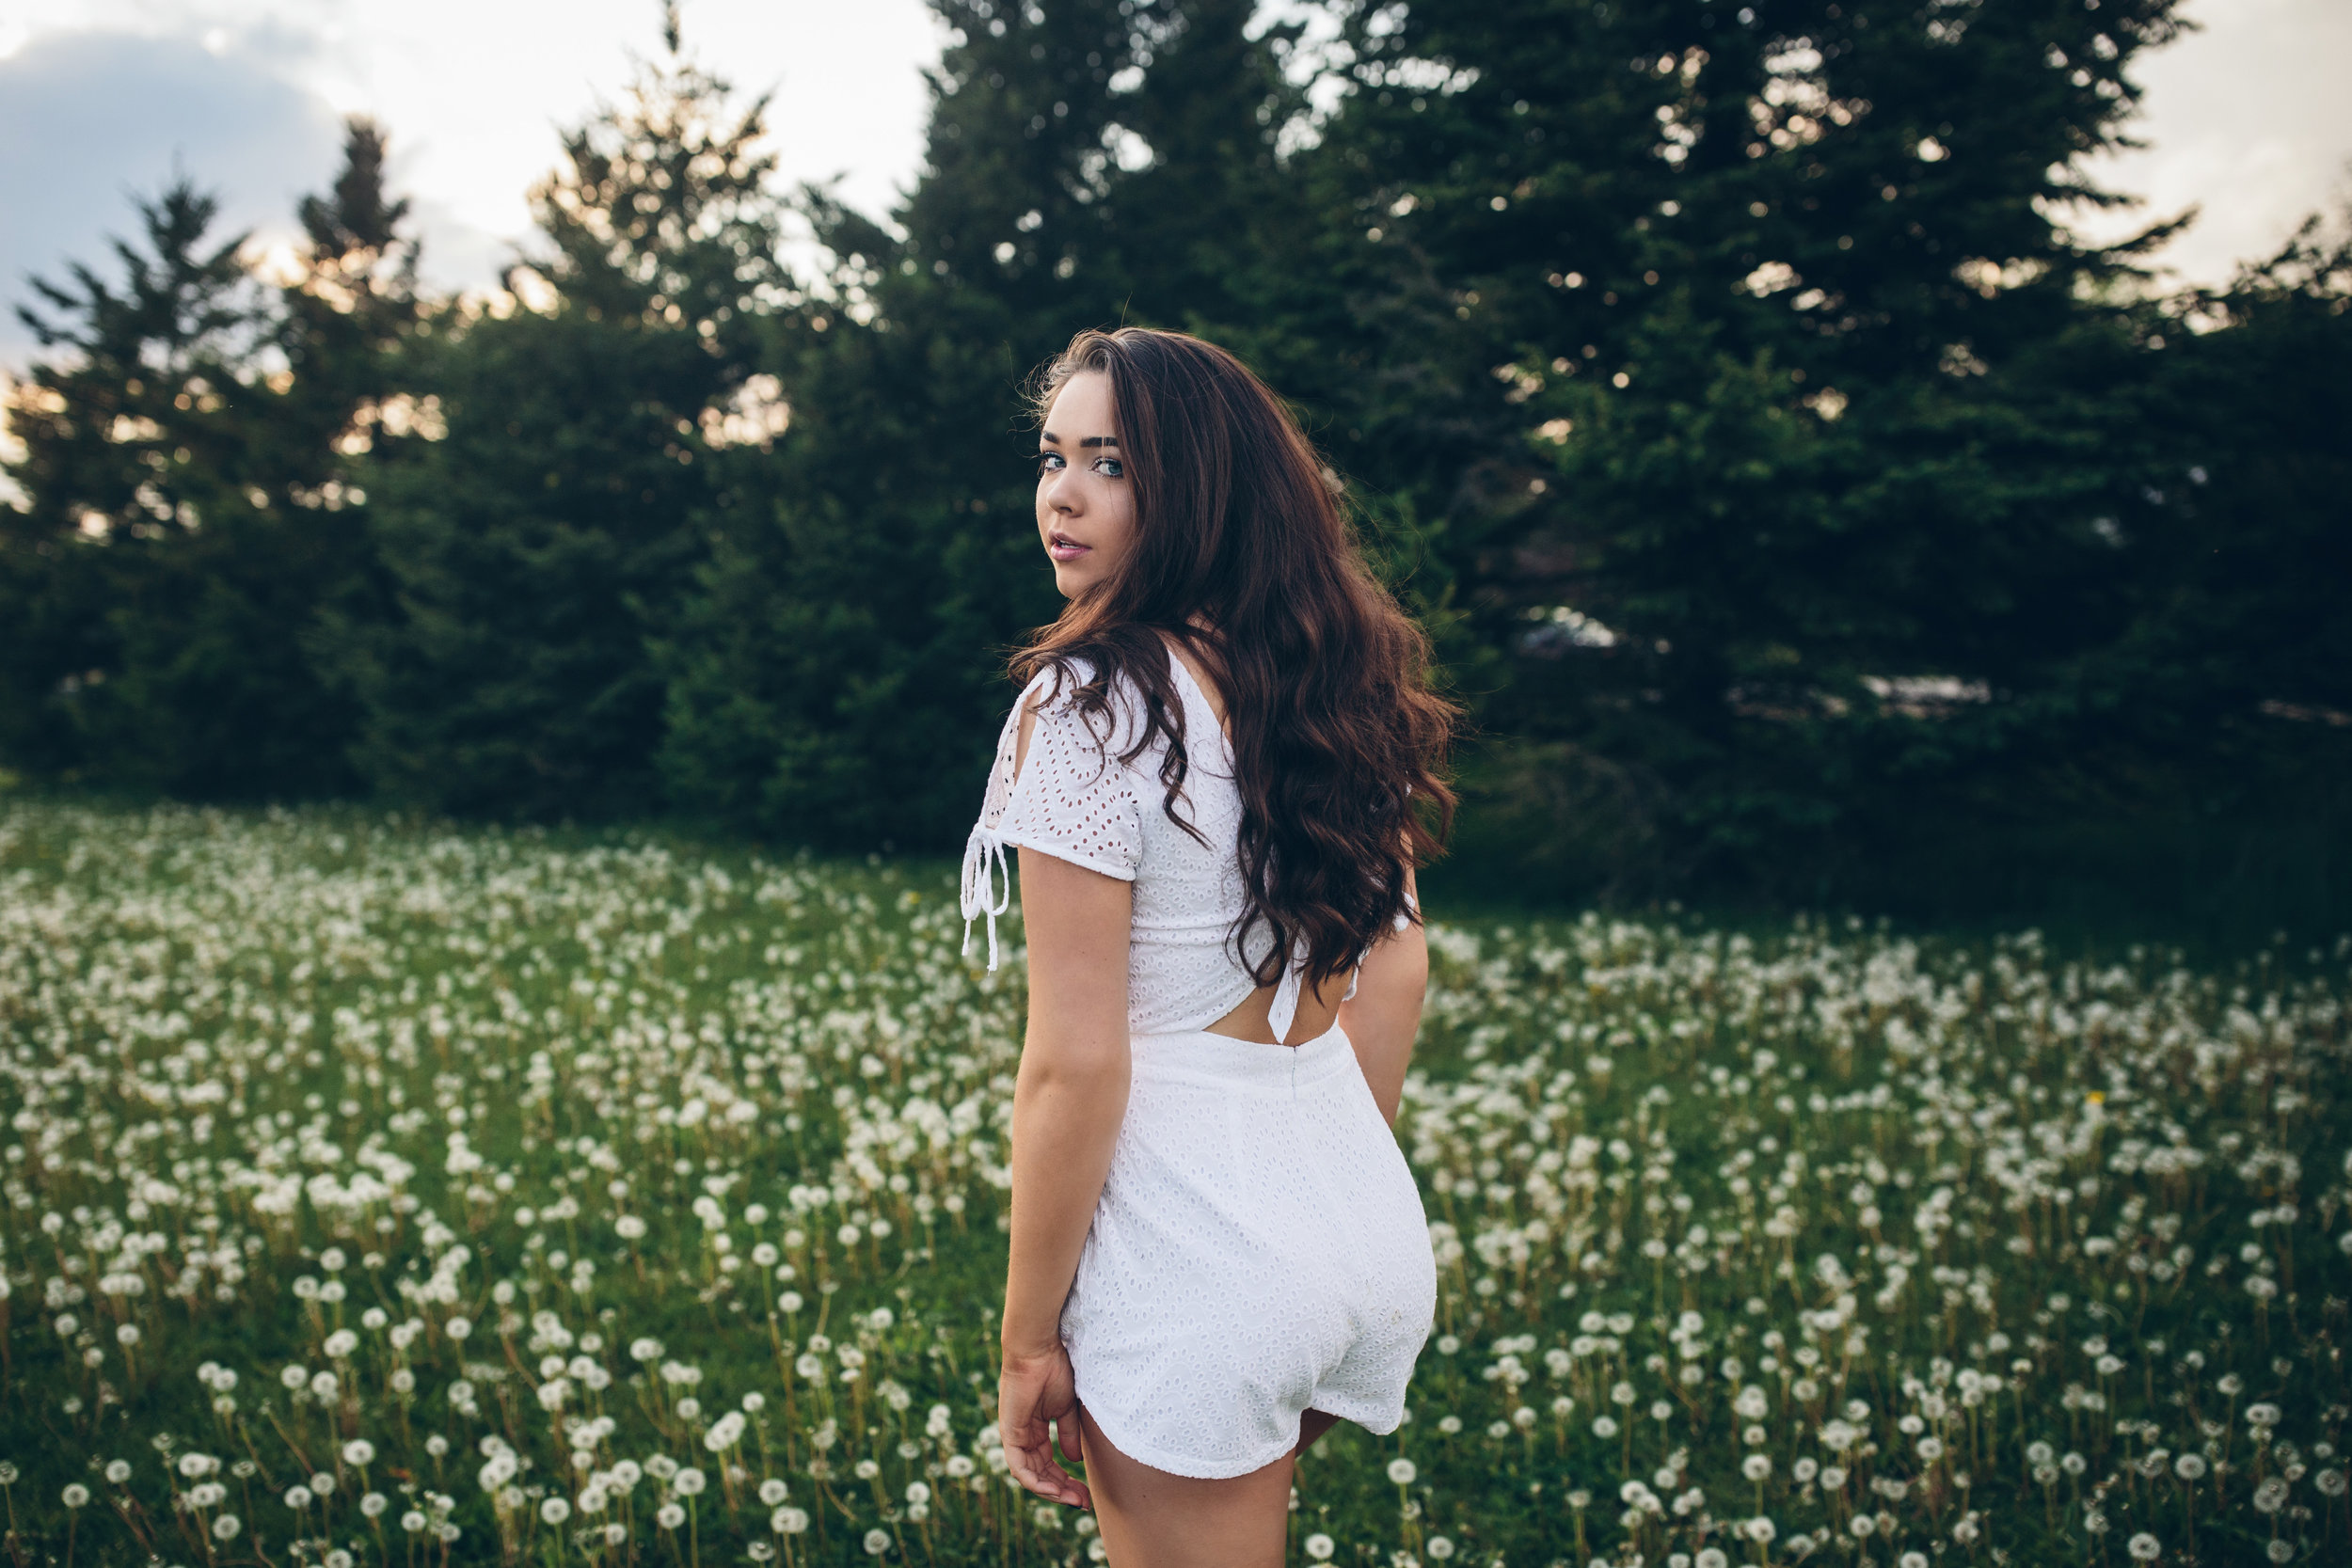 rural-wi-senior-pictures-with-dandelions.JPG